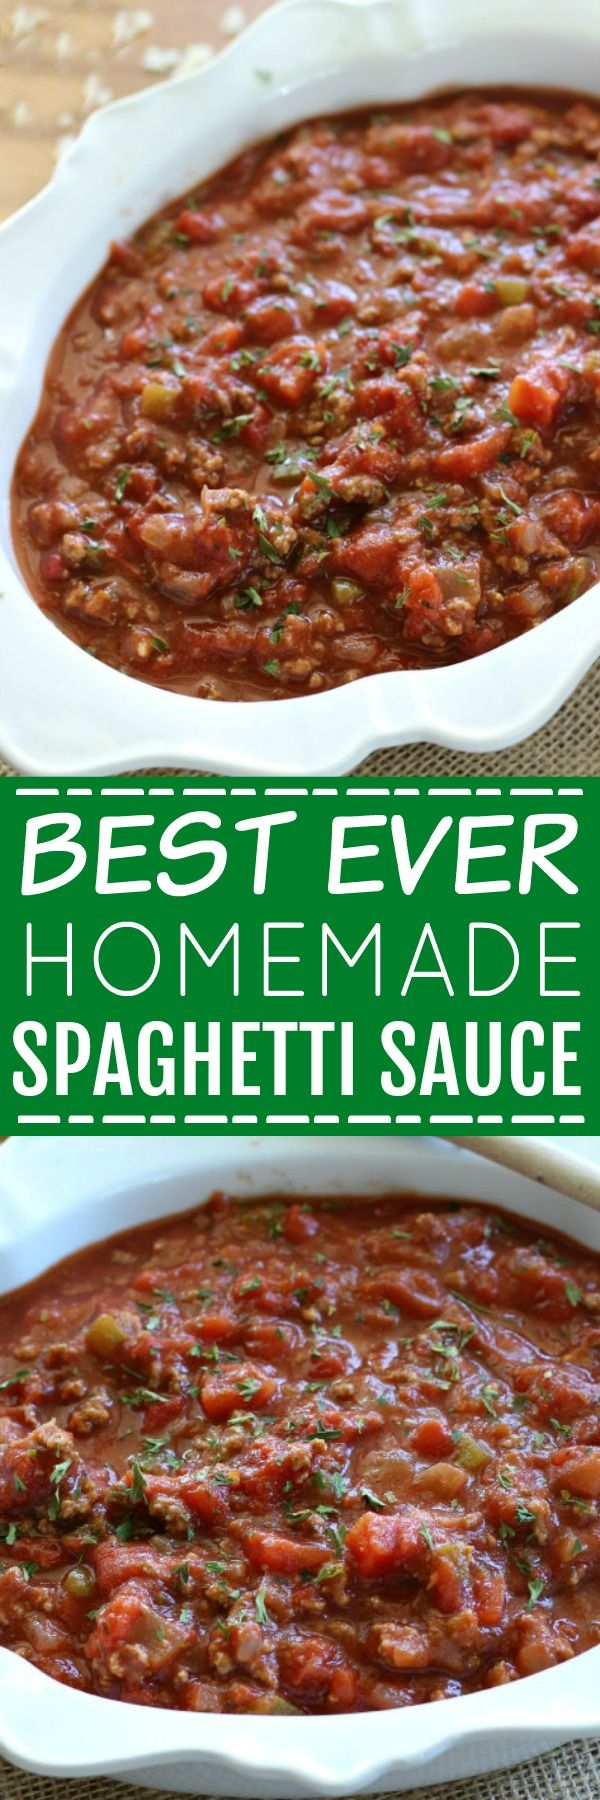 This Homemade Spaghetti Sauce is so easy and delicious you will never buy the jarred kind again Try it and you will see why I call it the Best Ever